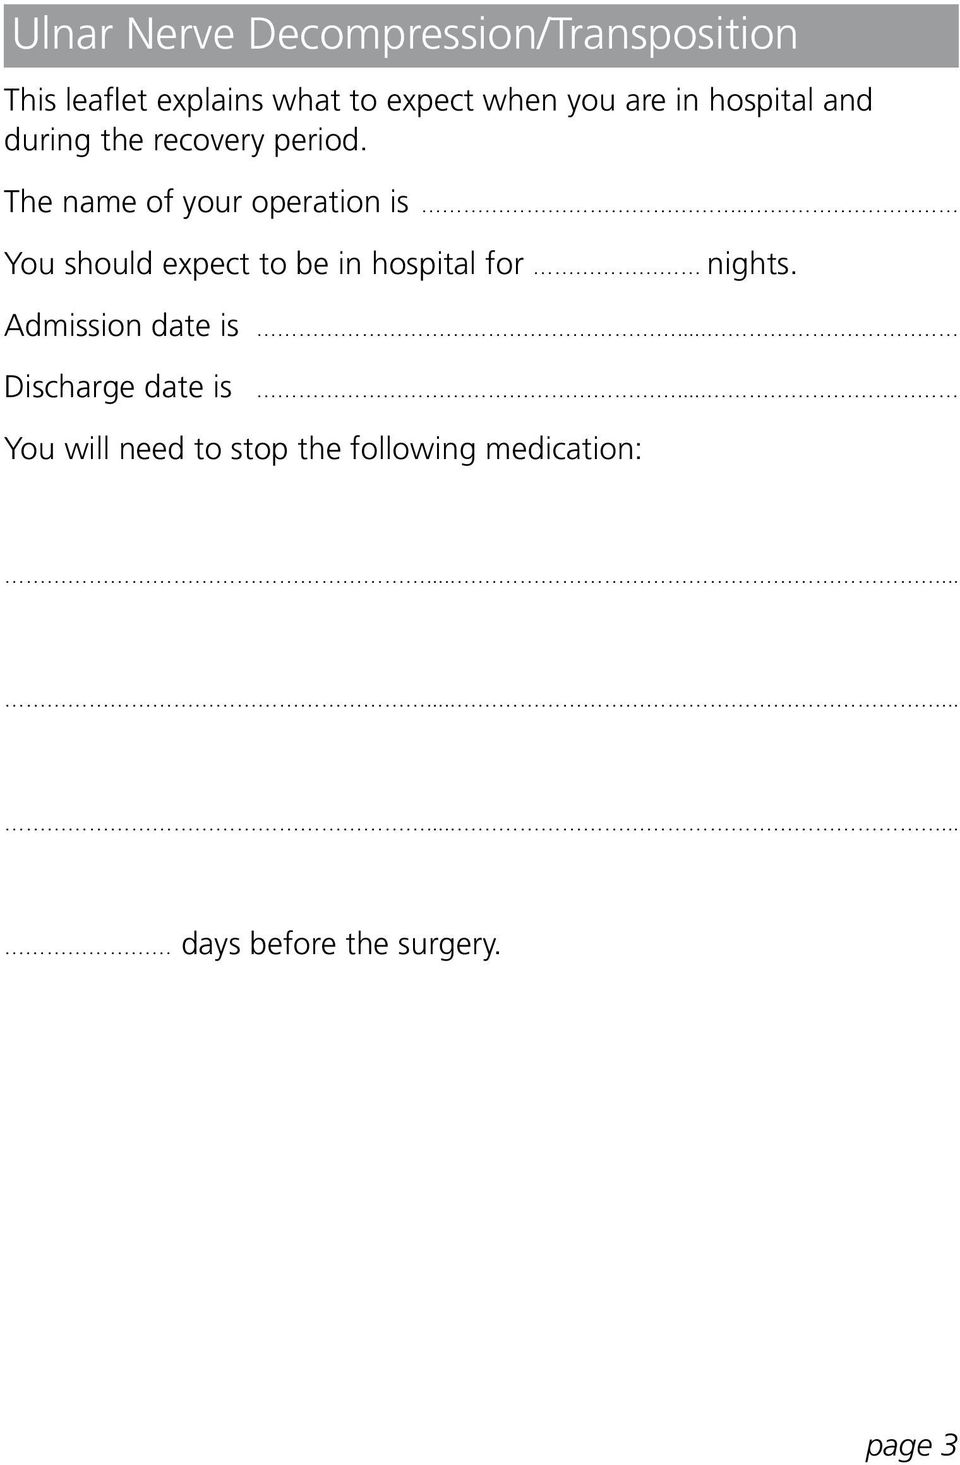 . You should expect to be in hospital for nights. Admission date is... Discharge date is.